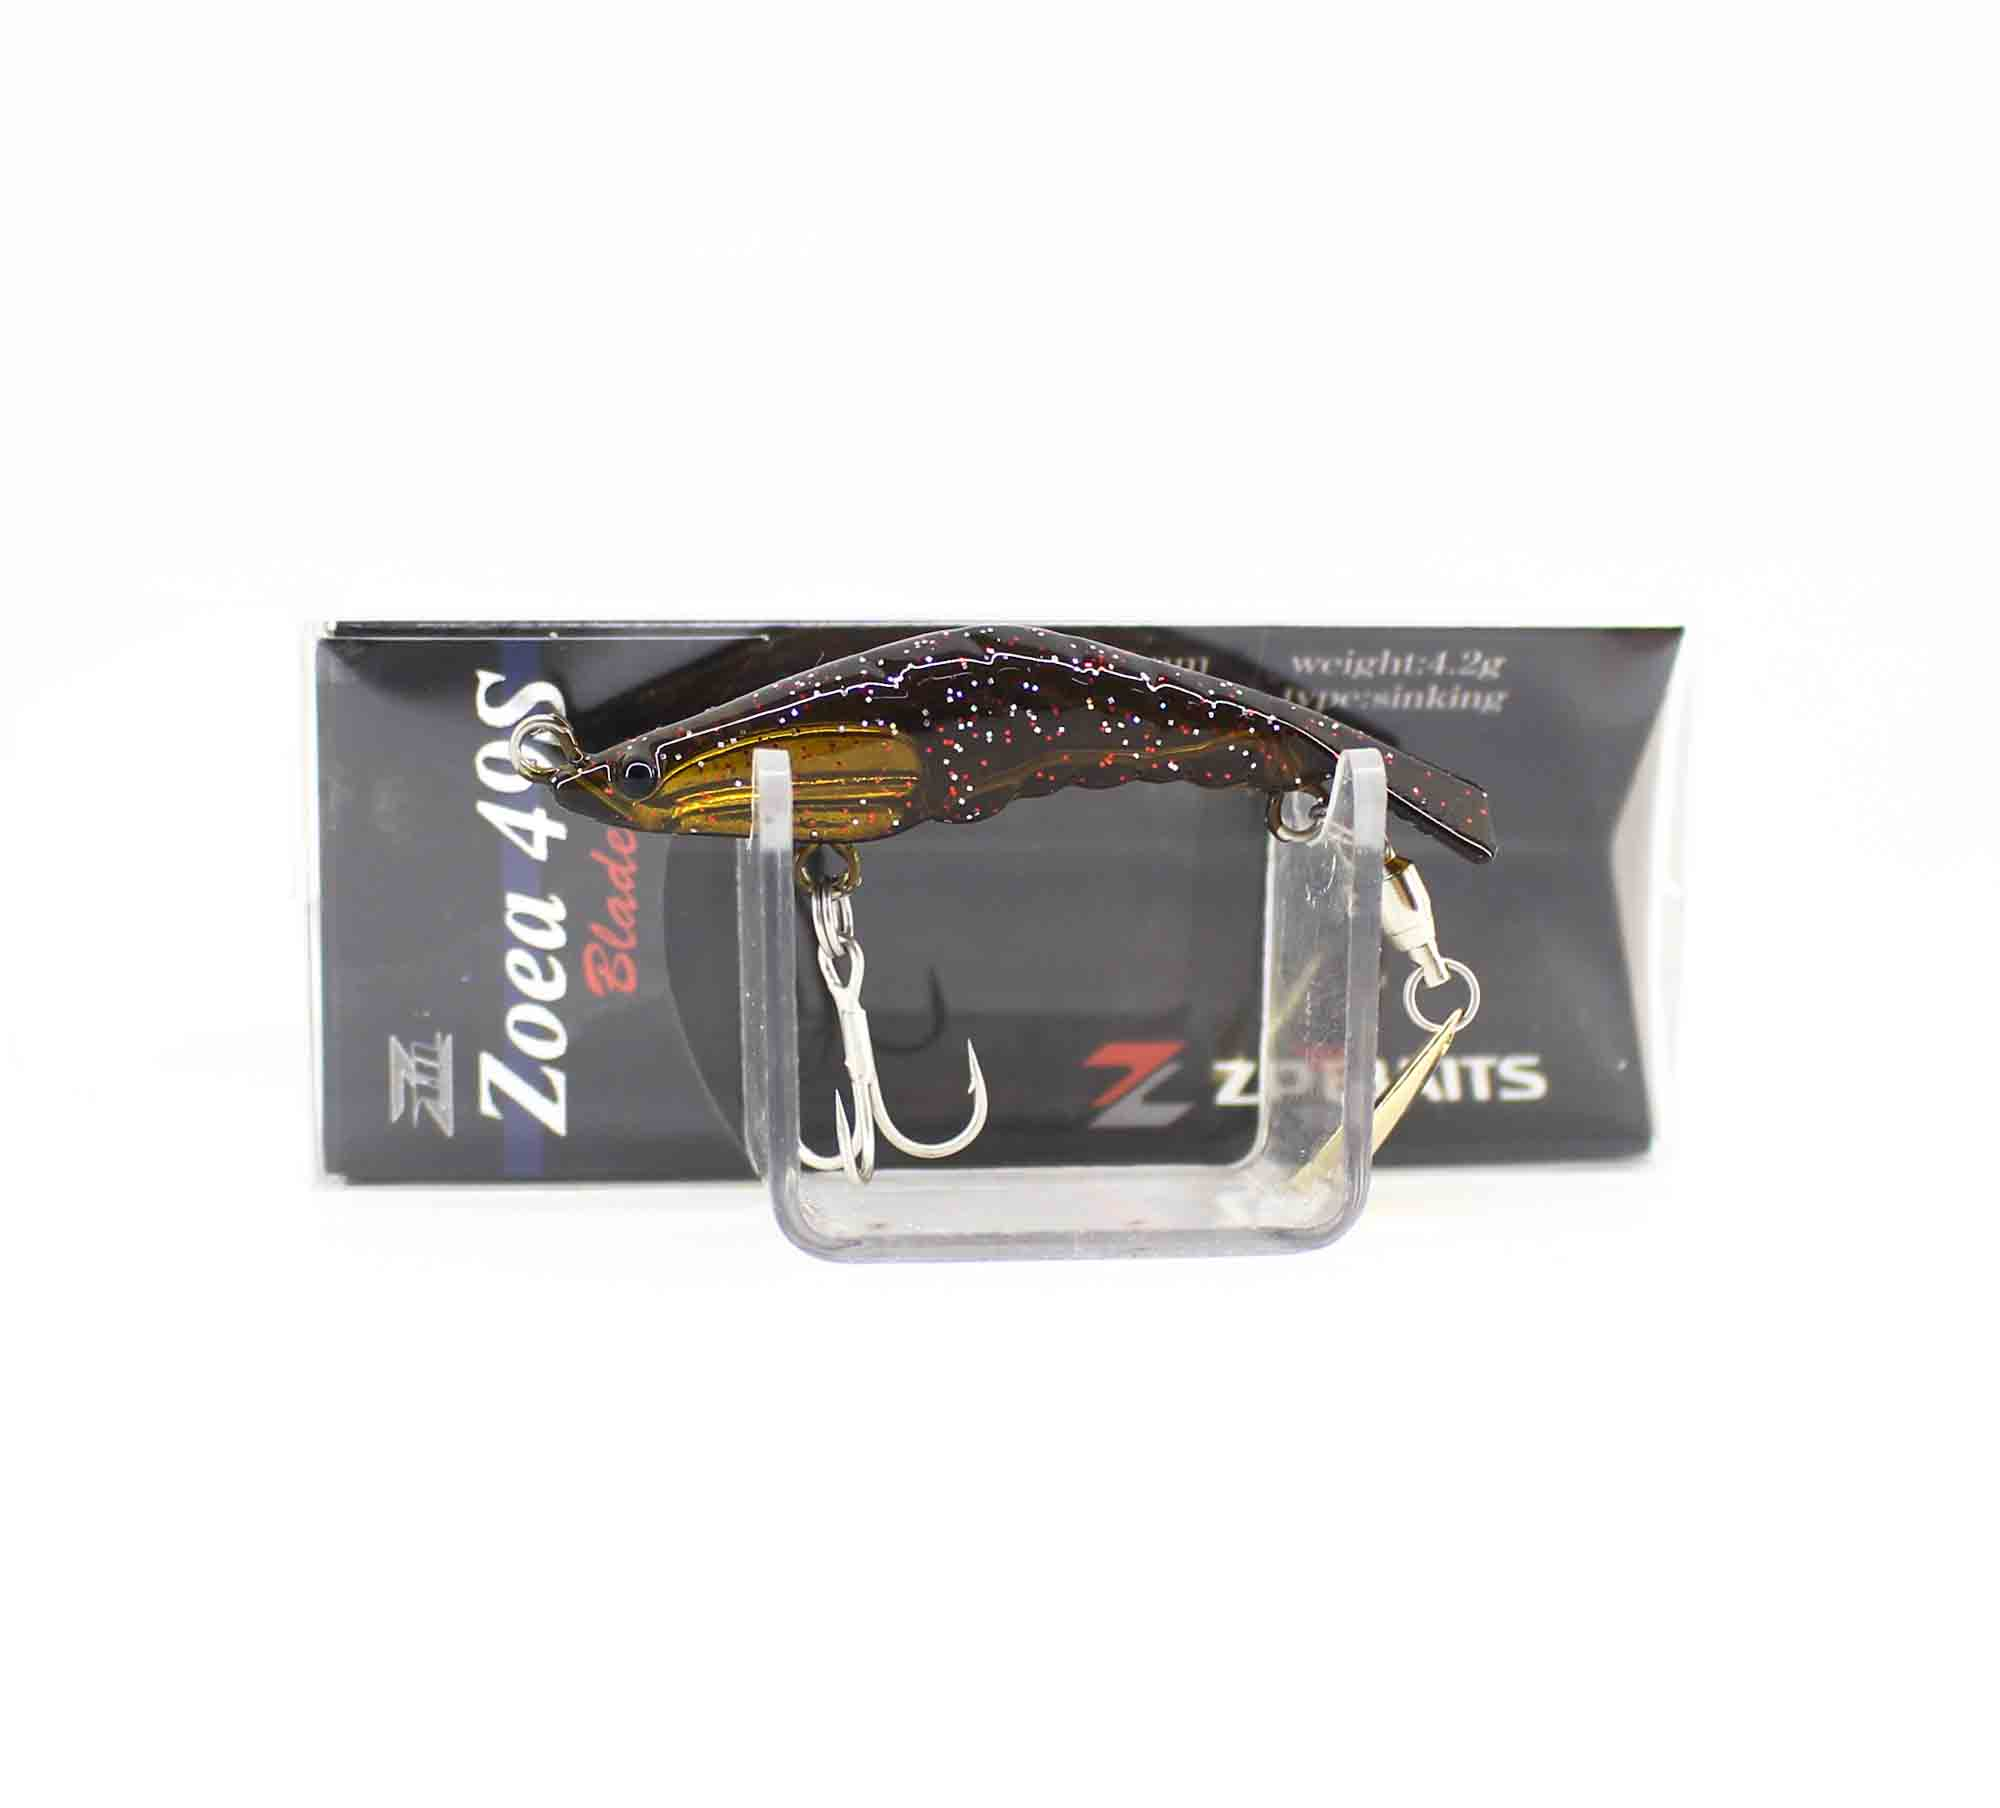 Zipbaits ZBL Zoea 49S Blade Sinking Lure 278 (7318)